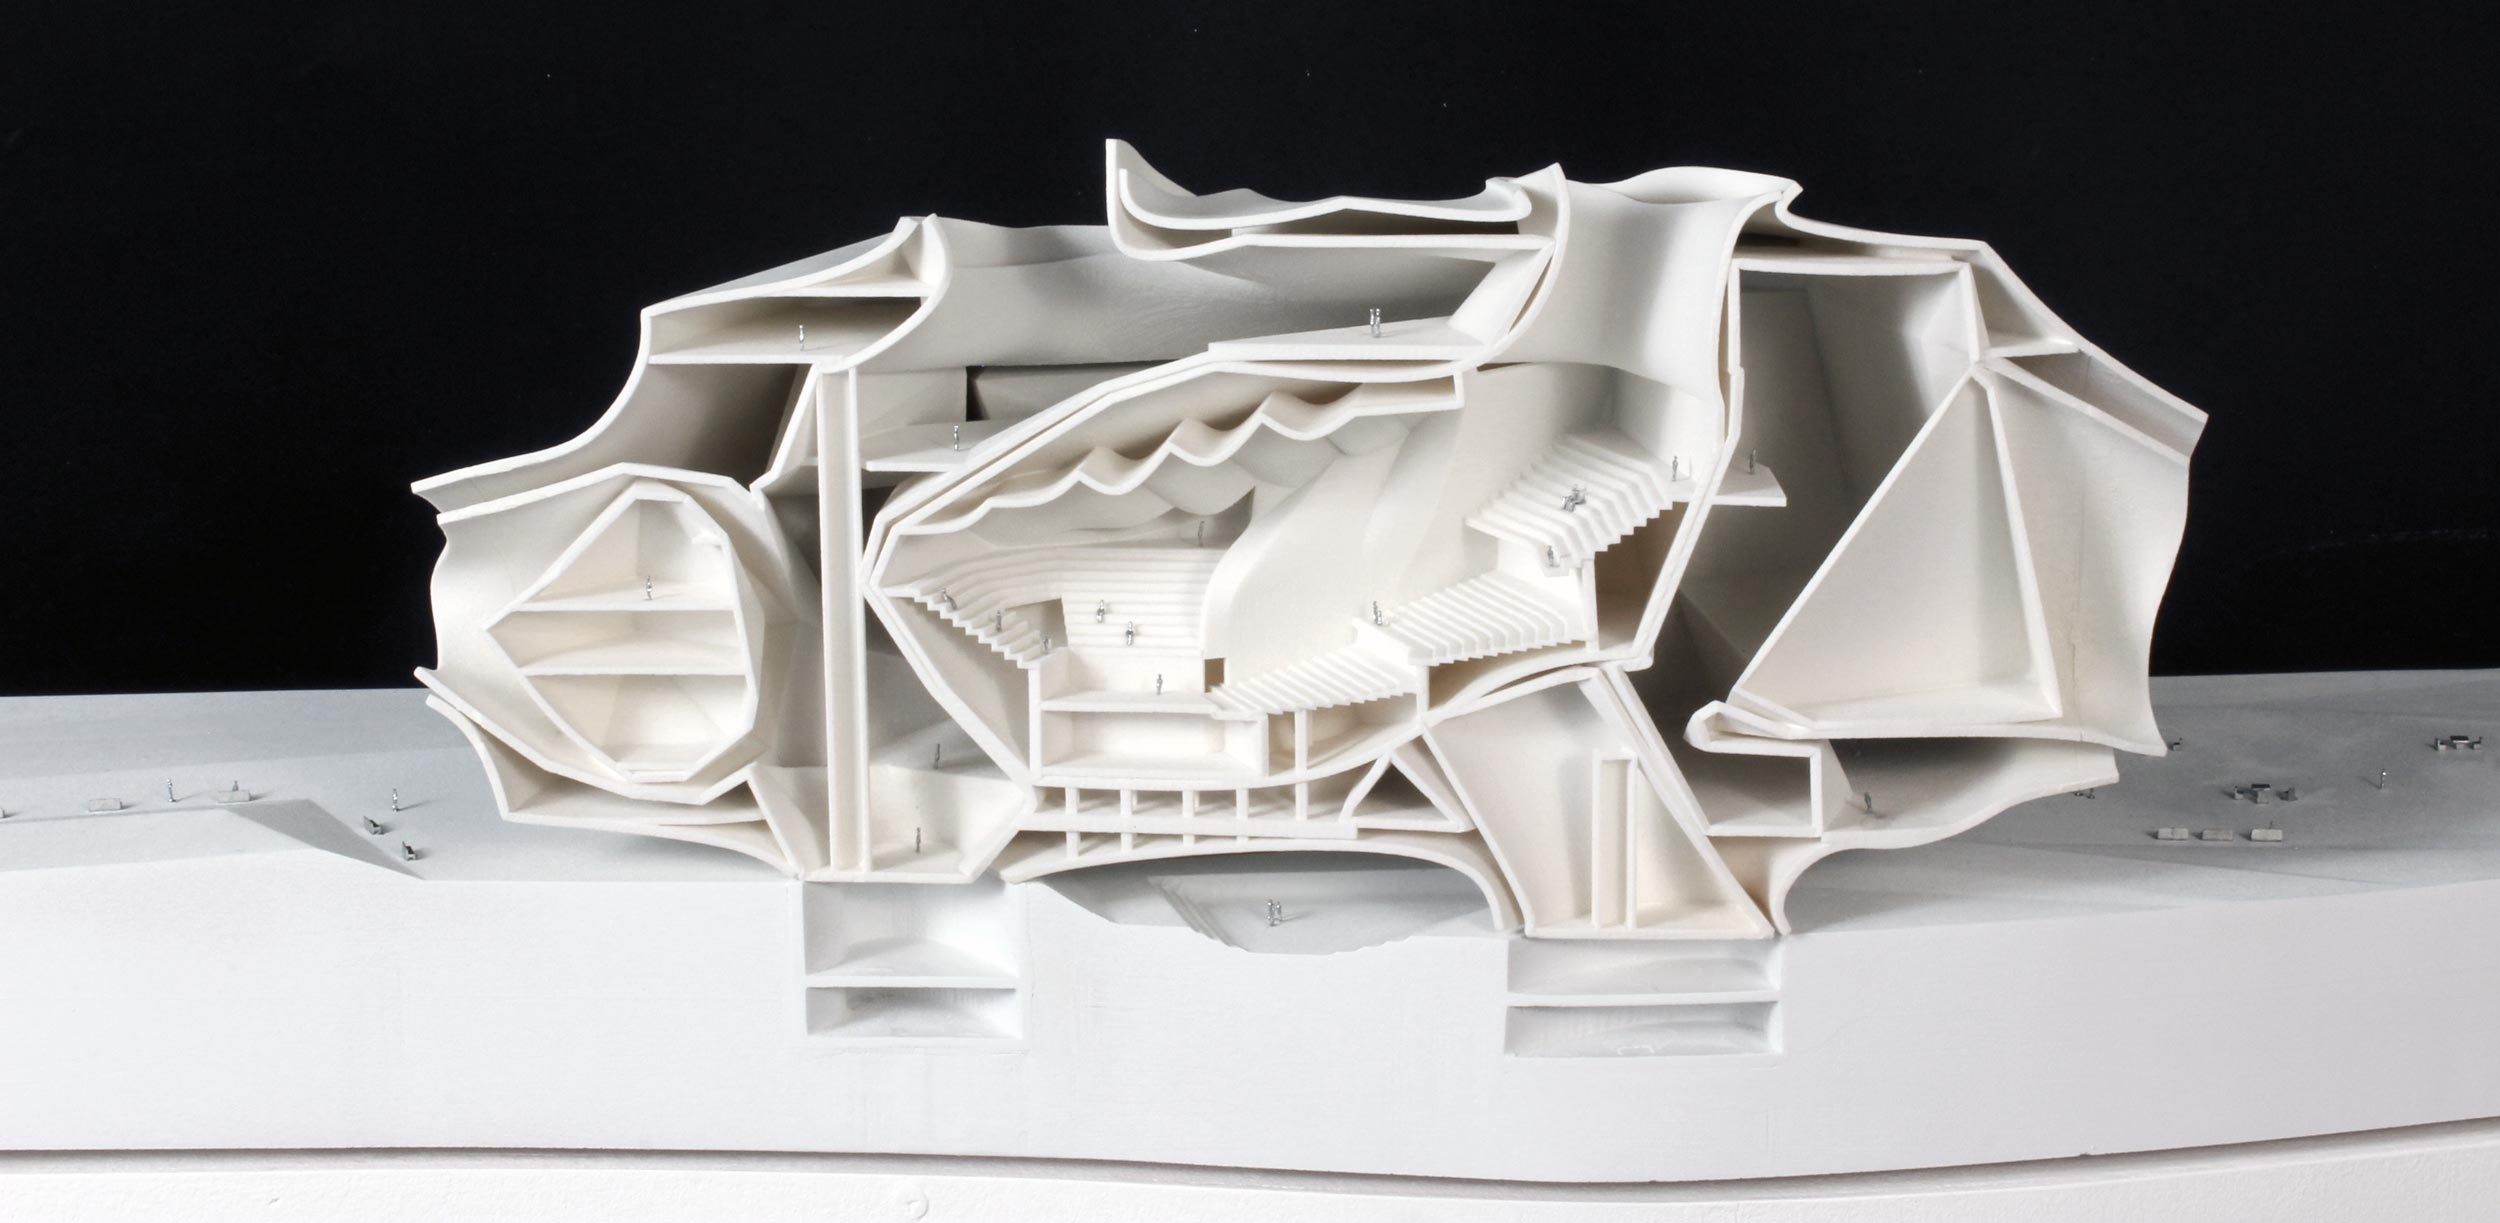 3d printing for architecture and design students lgm for Print architectural plans